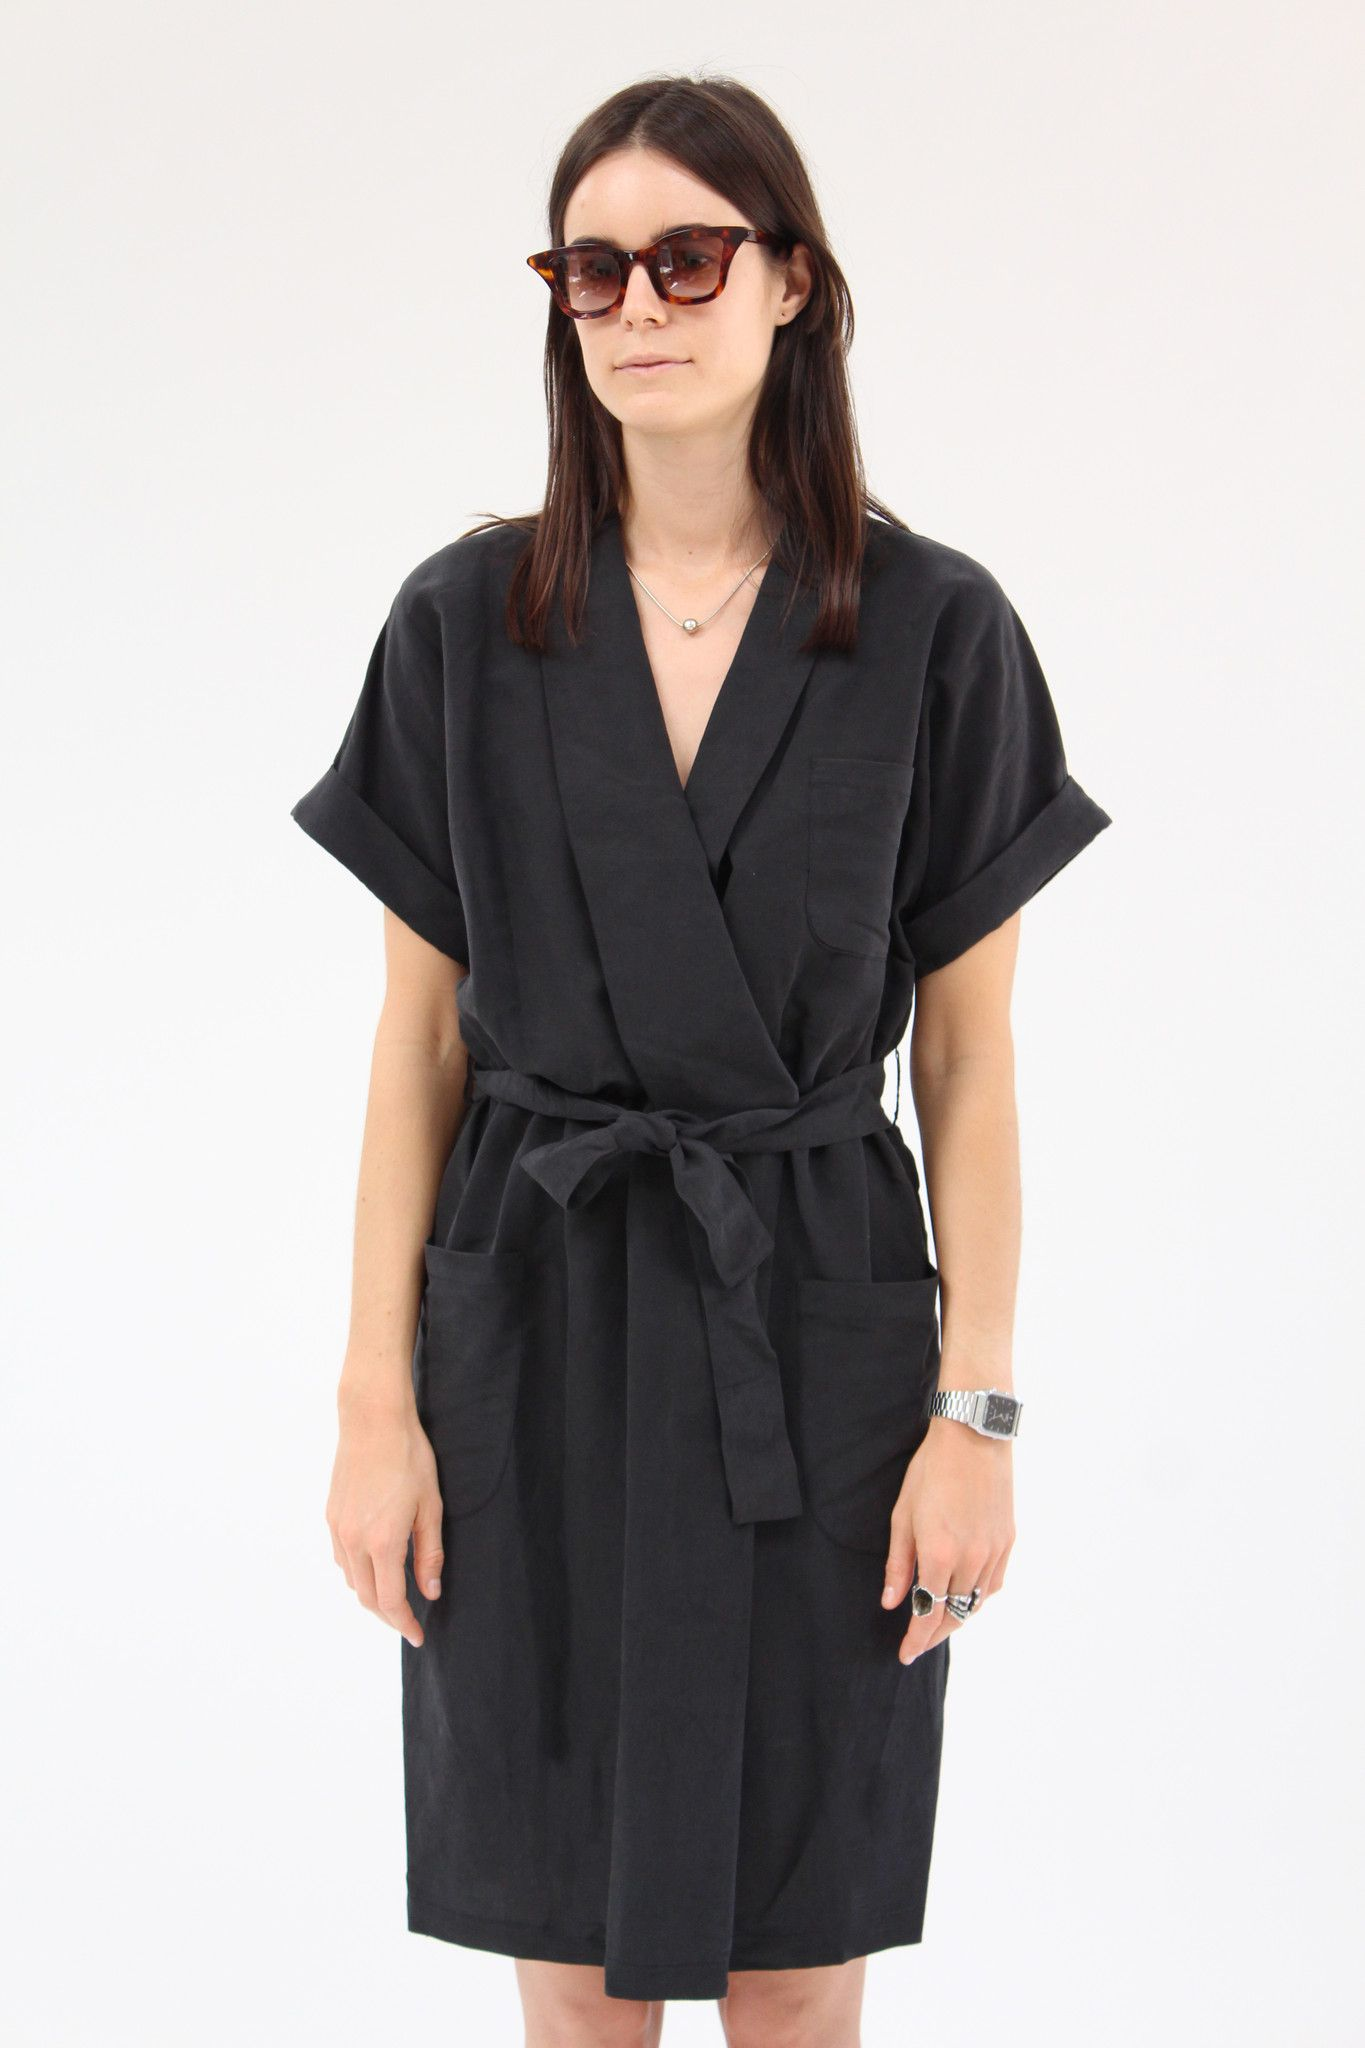 aa657741c20e Kimono inspired wrap collar, cuffed sleeves, deep pockets and gentle  elastic waist. Comes with self tie waist belt. Hand wash cold. Made in  Australia.